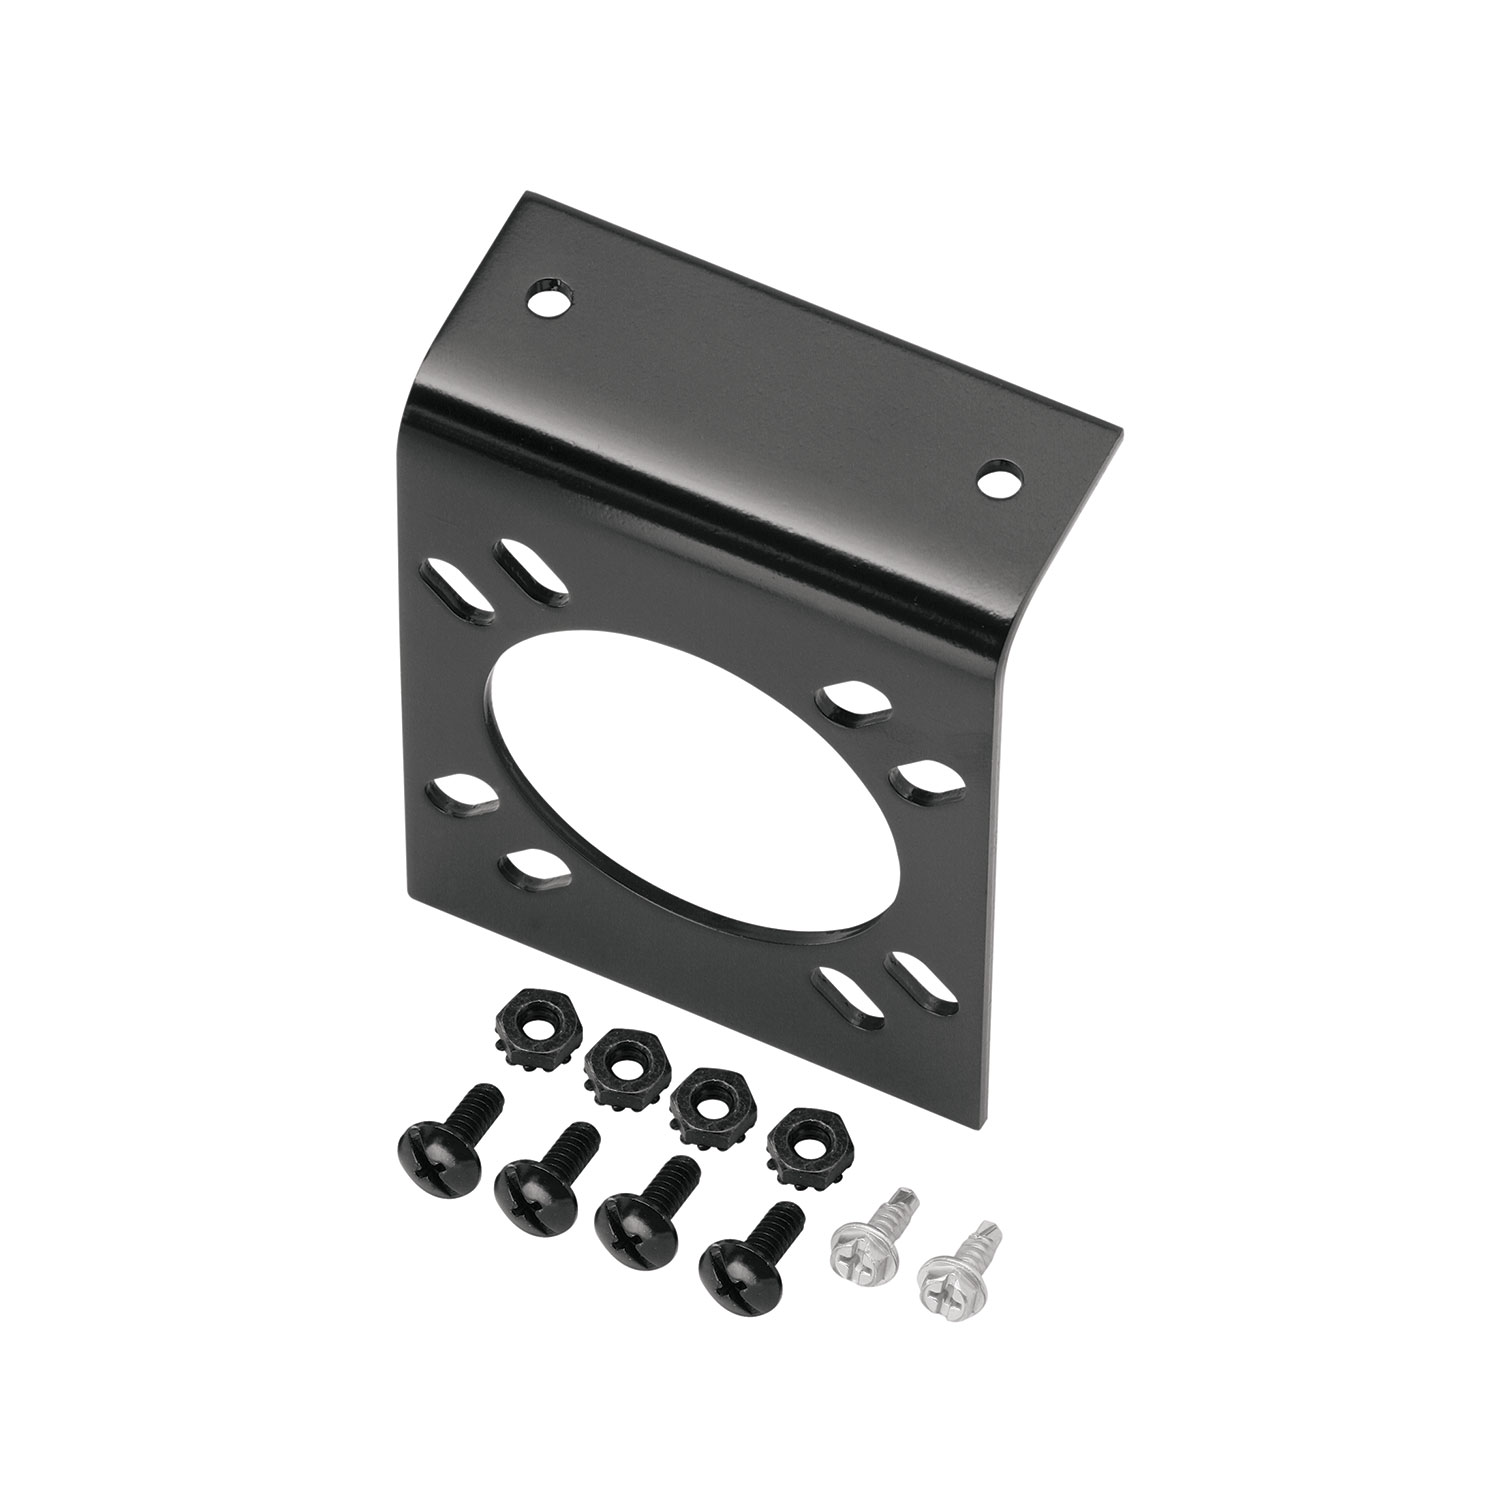 Tow Ready 118156 6 and 7-Way Connector Mounting Box